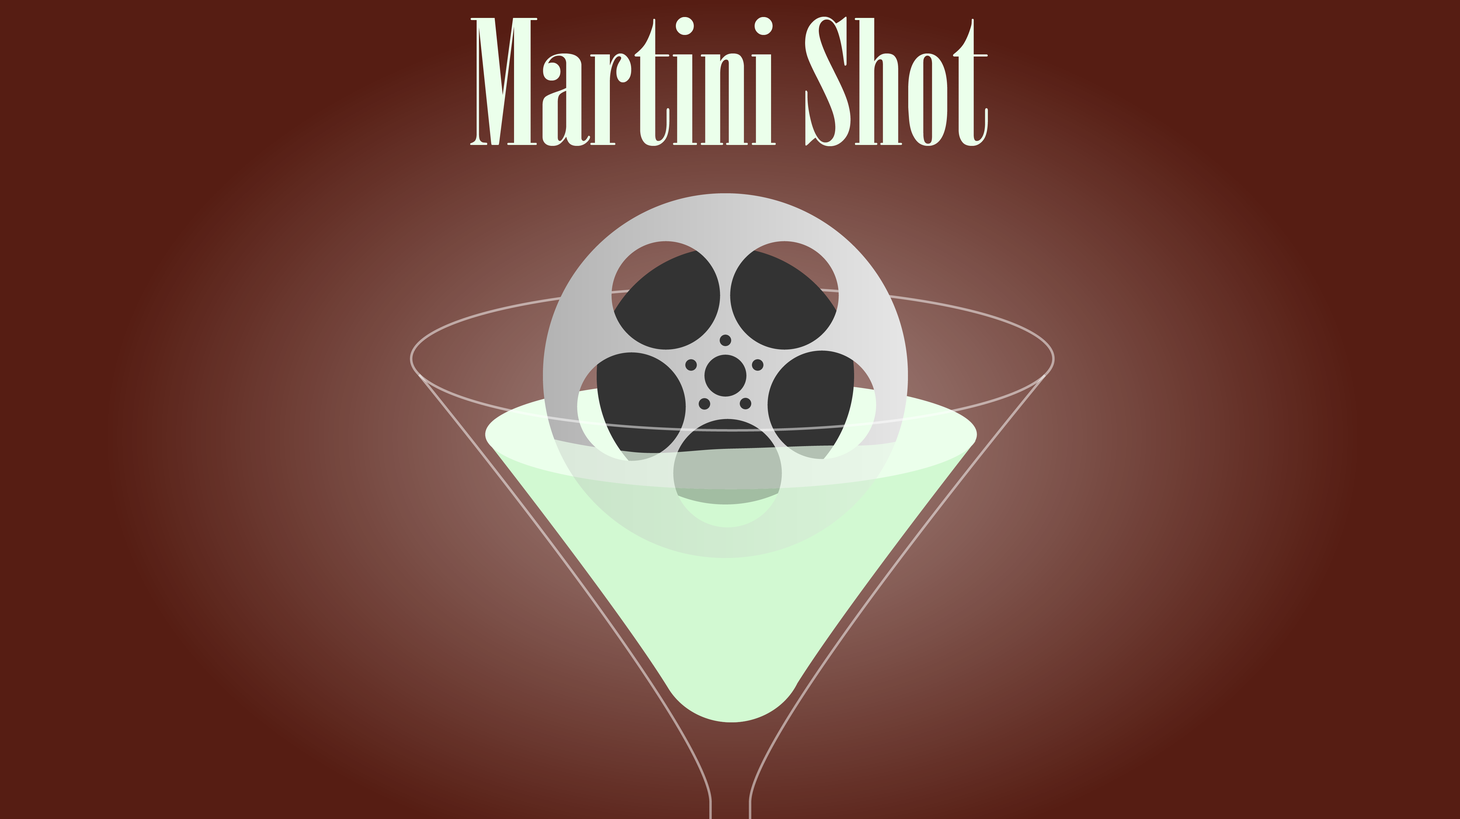 This is Rob Long and on today's Martini Shot, I talk about the audience, which has been practicing a kind of social distancing since the moment Netfix started streaming — or, if you want to get deeper, since YouTube dot com turned on the juice.